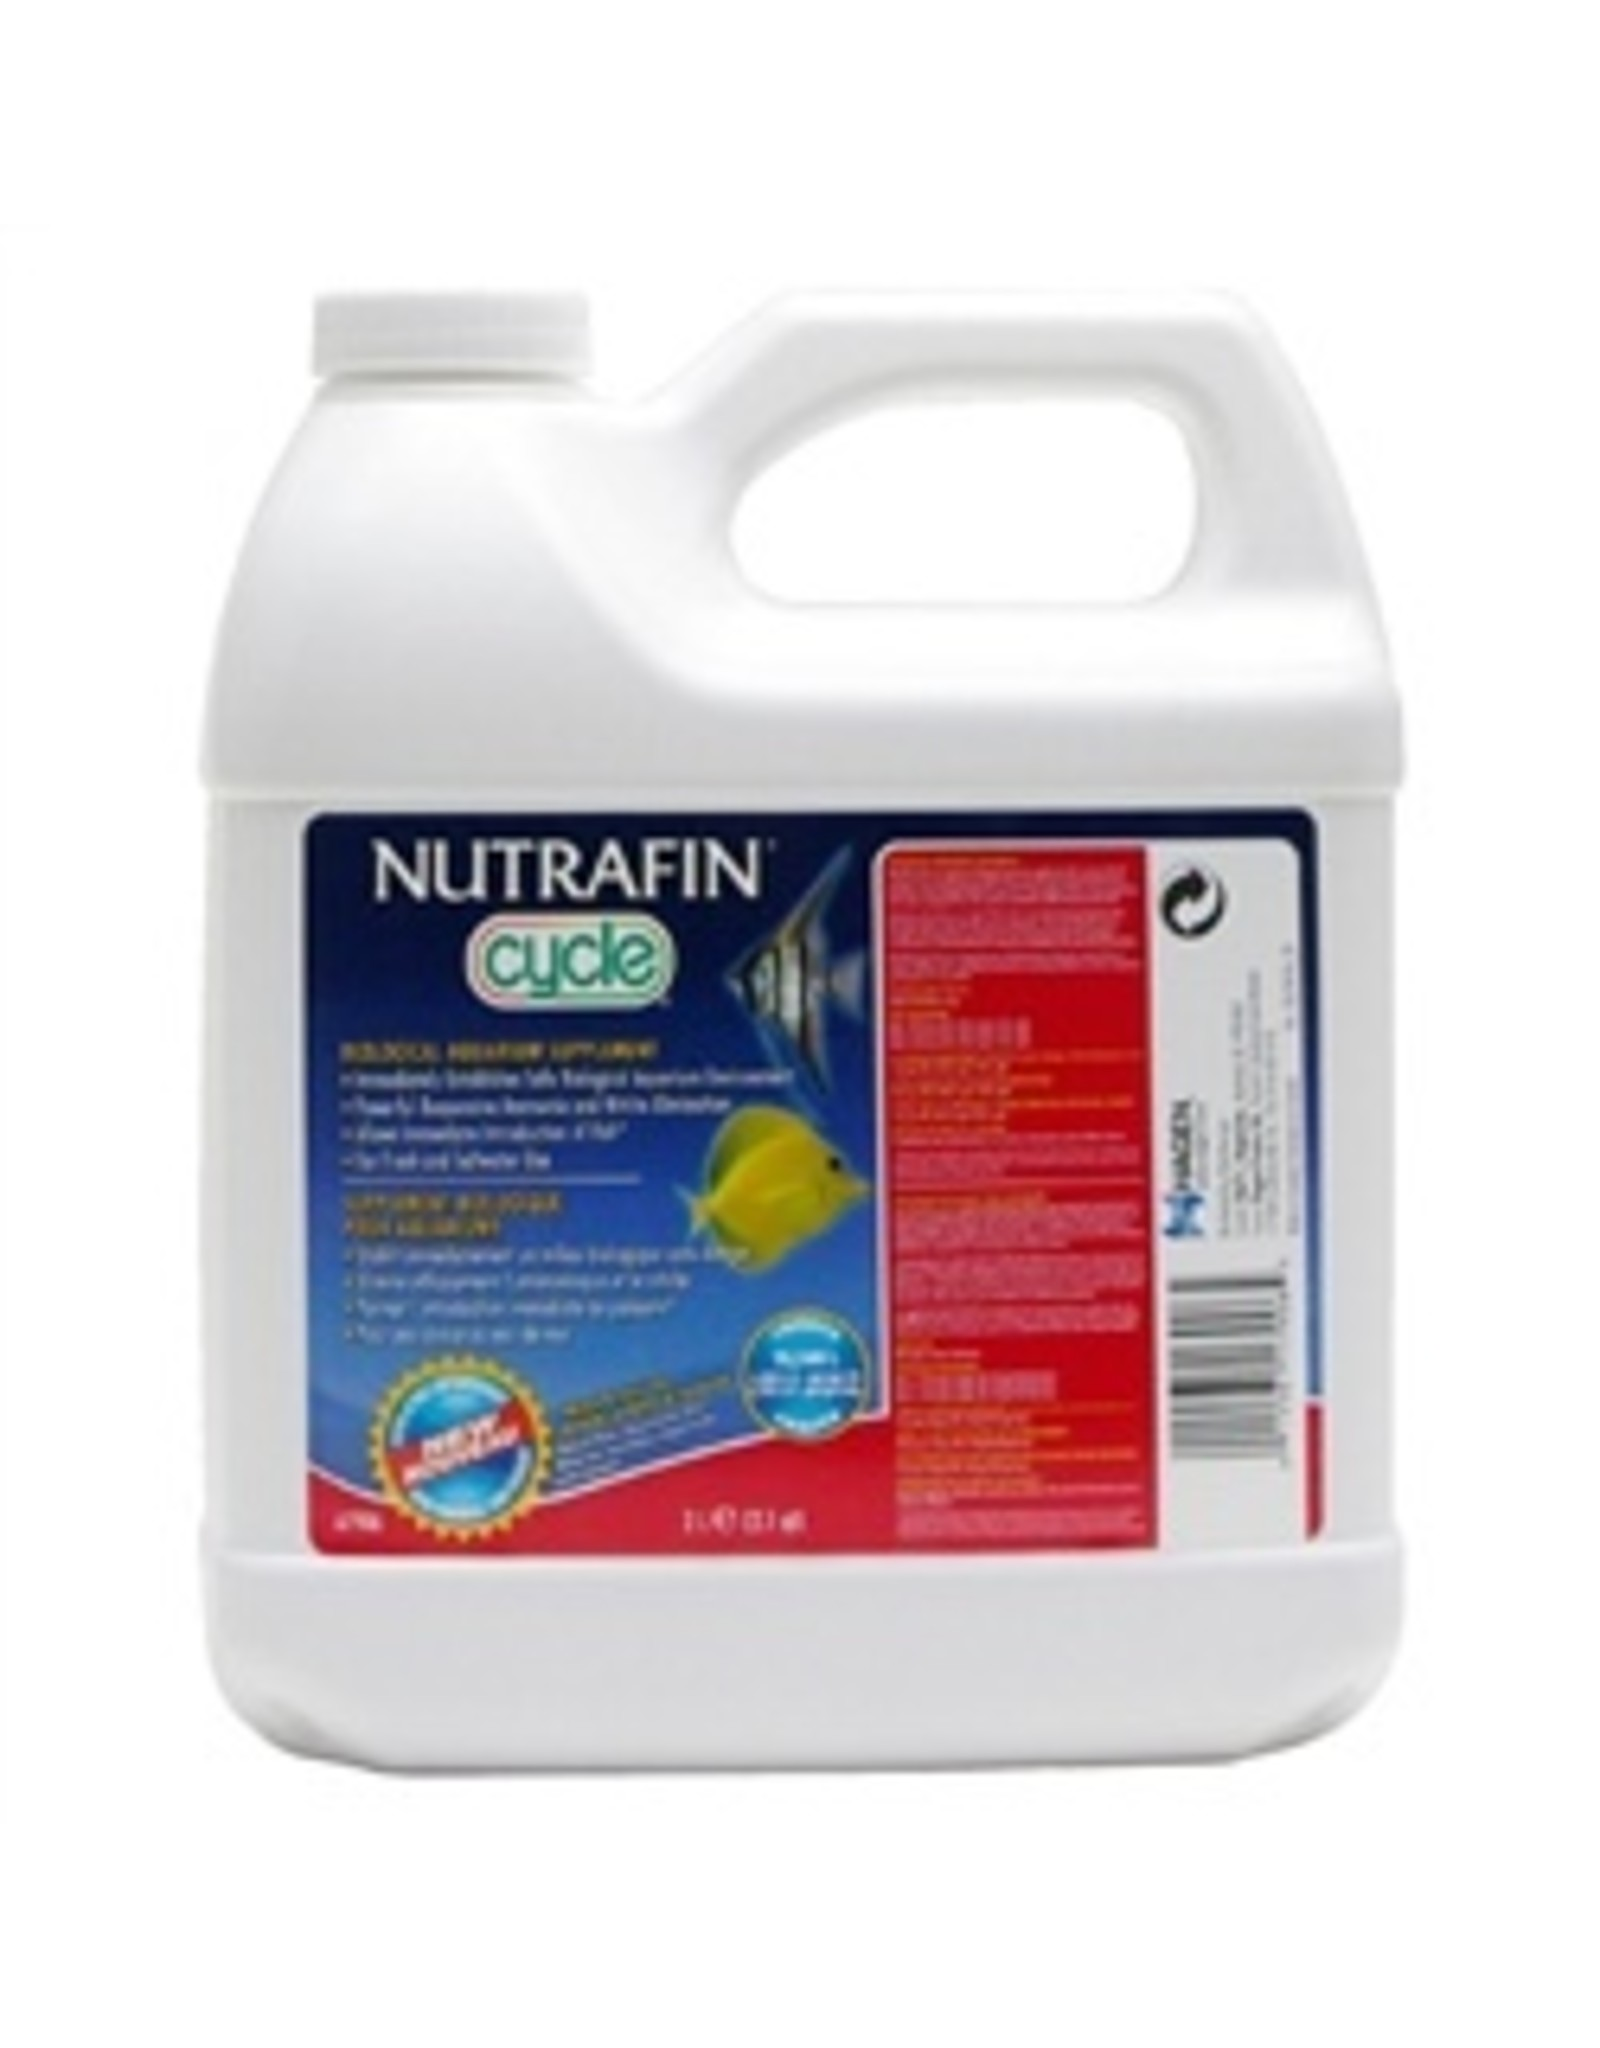 NutraFin NUTRAFIN Cycle Bio Filter Supplement